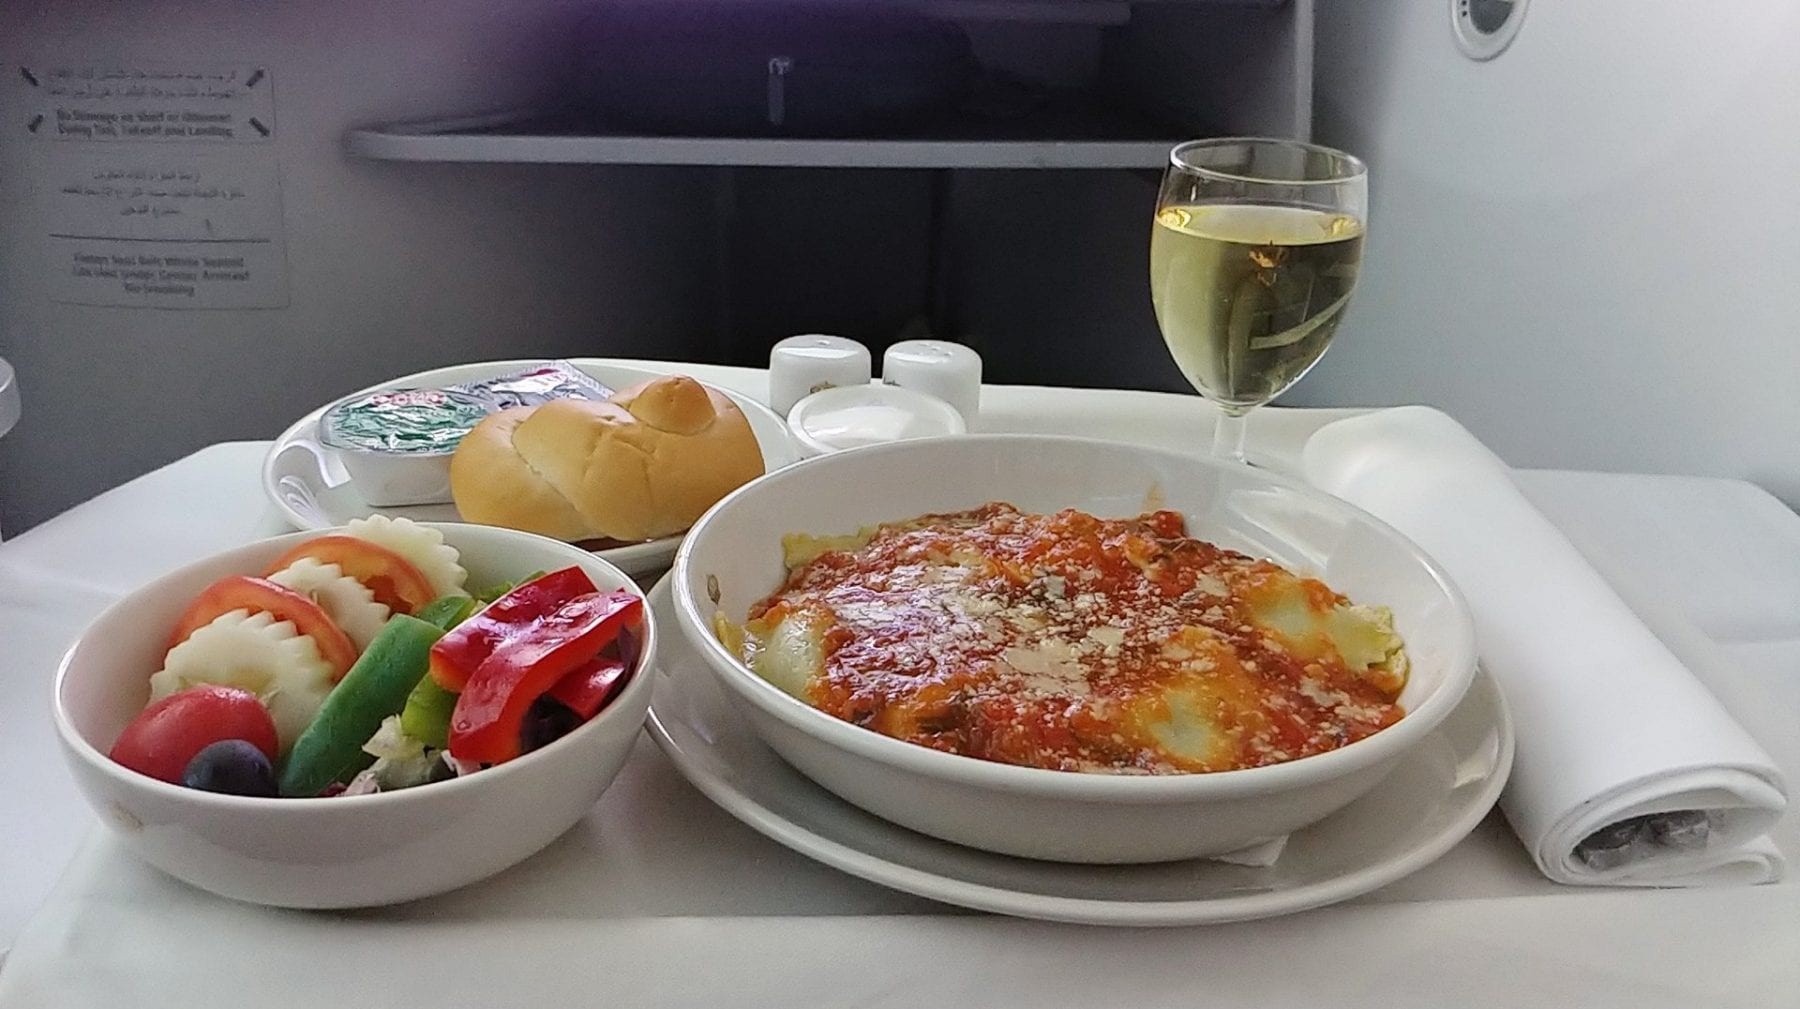 Royal Jordanian business class meal